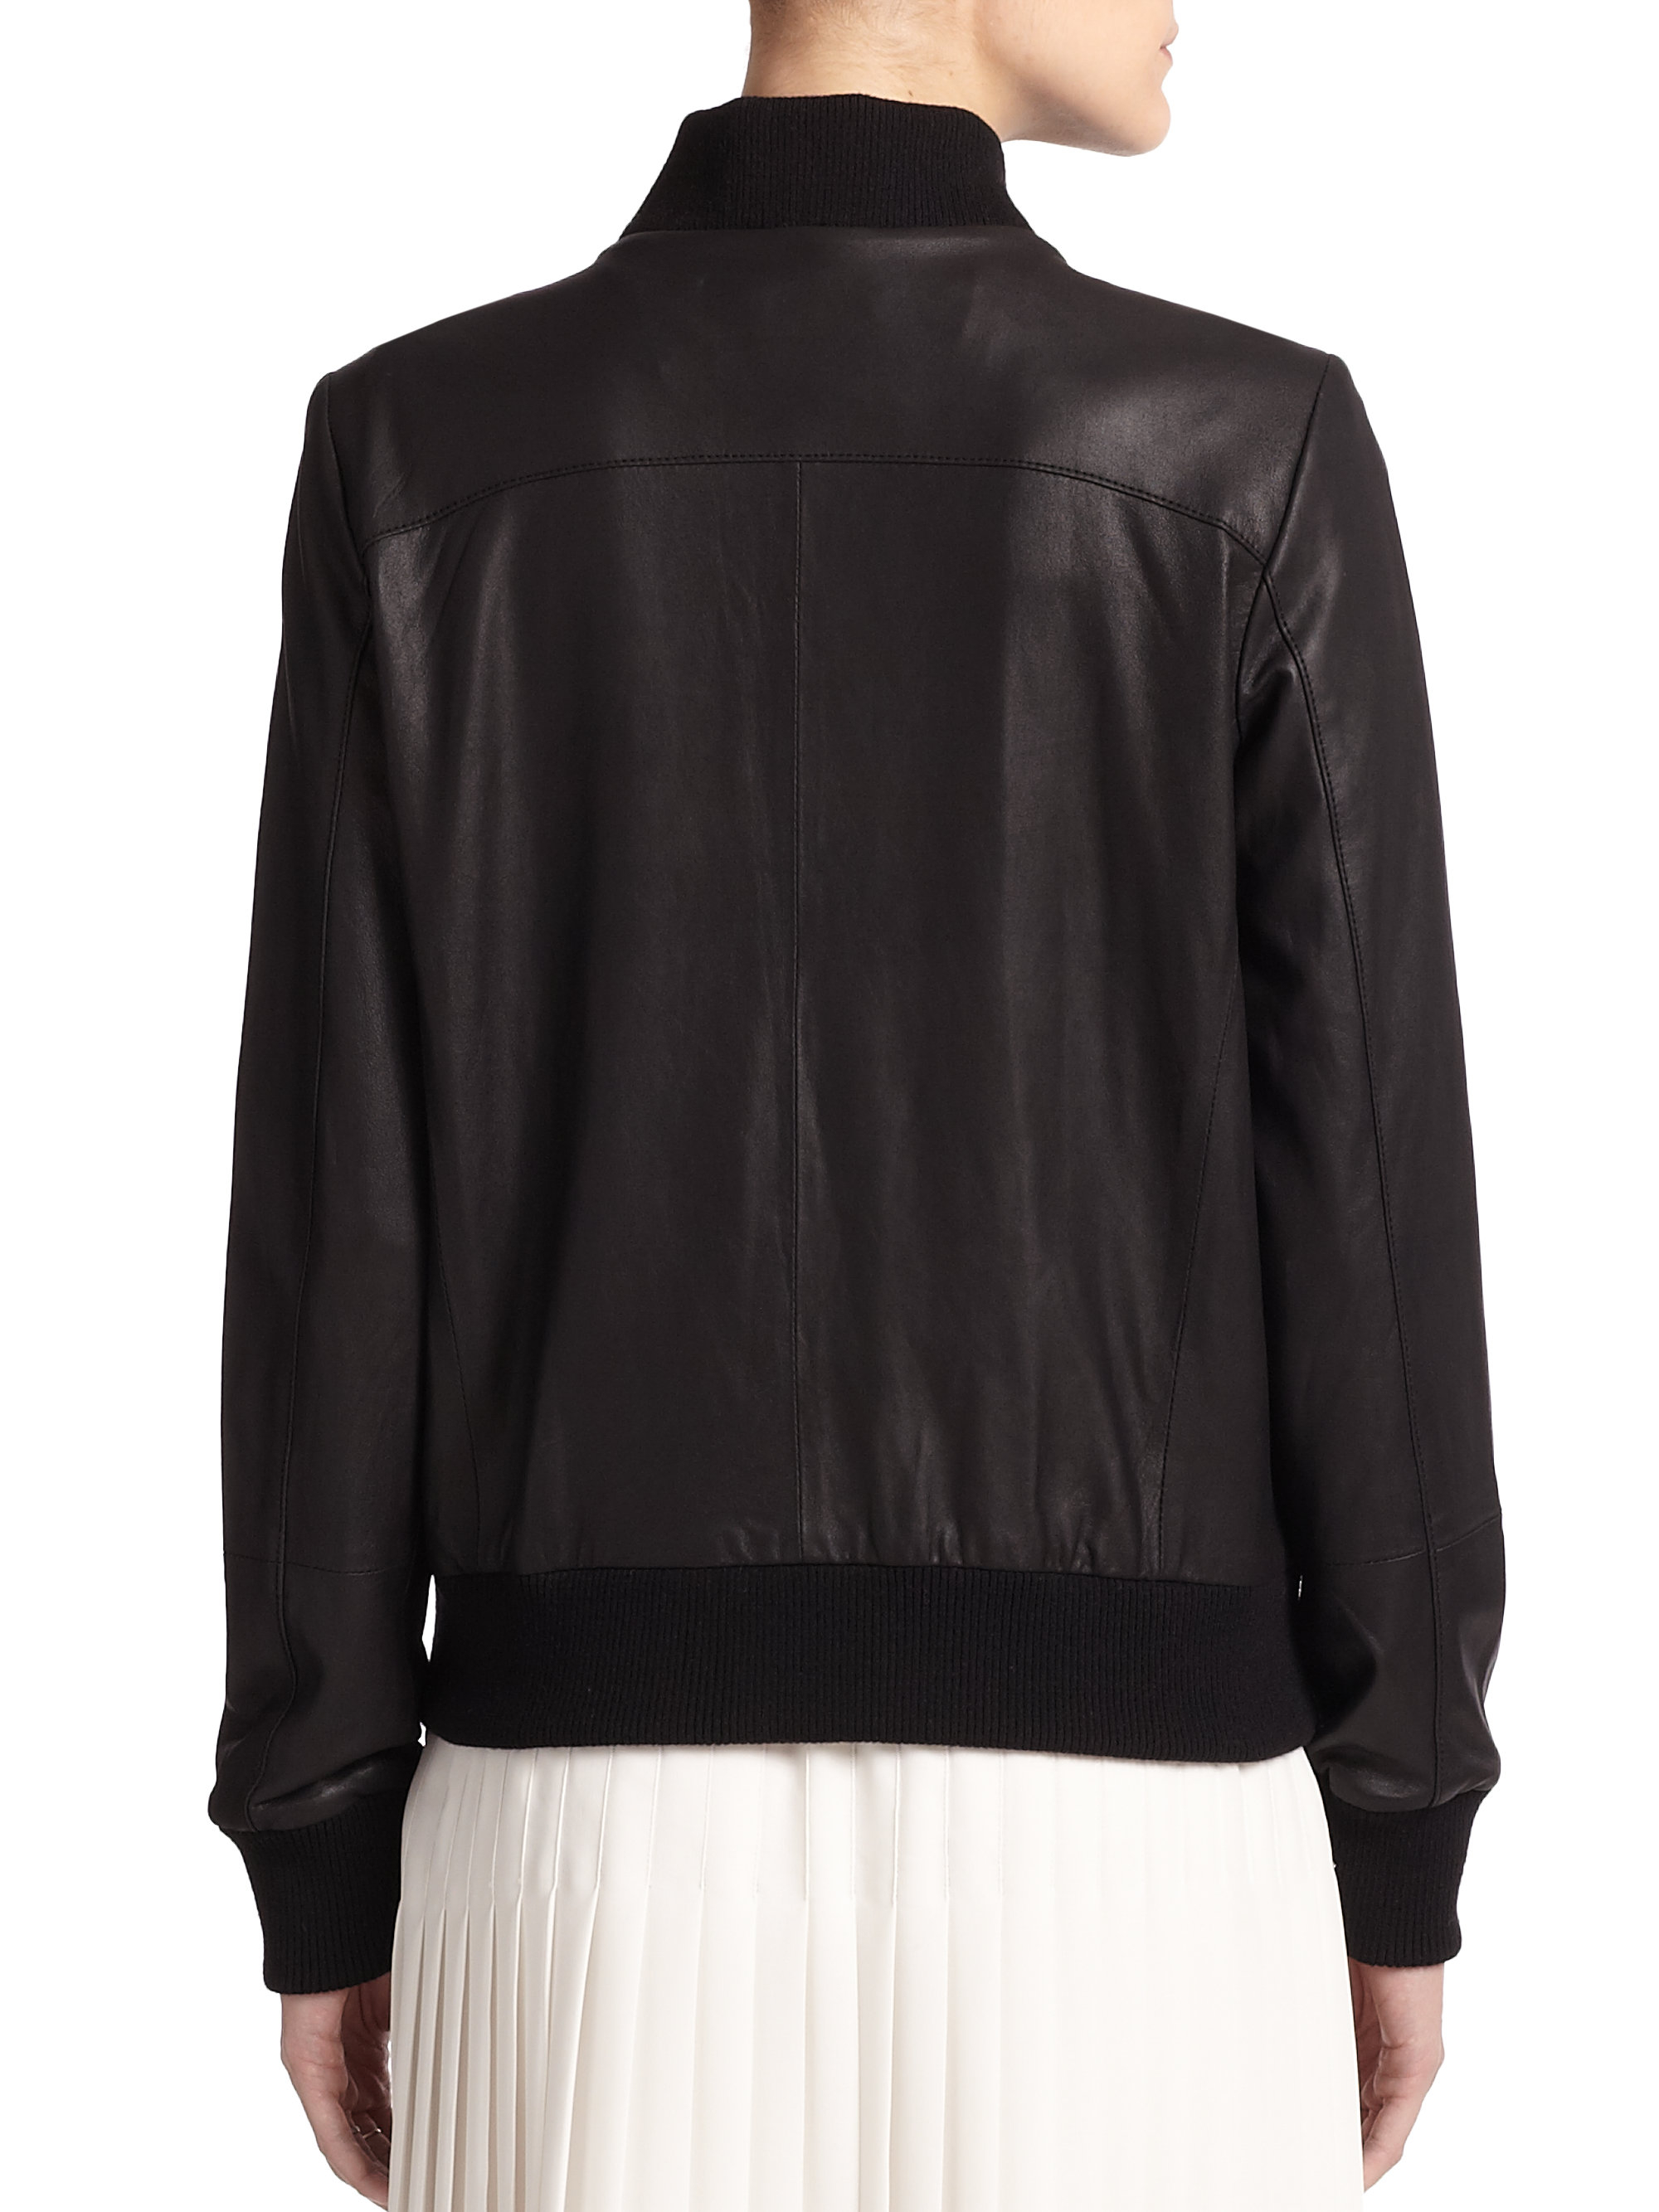 3414bcc2683 Lyst - Vince Leather Bomber Jacket in Black